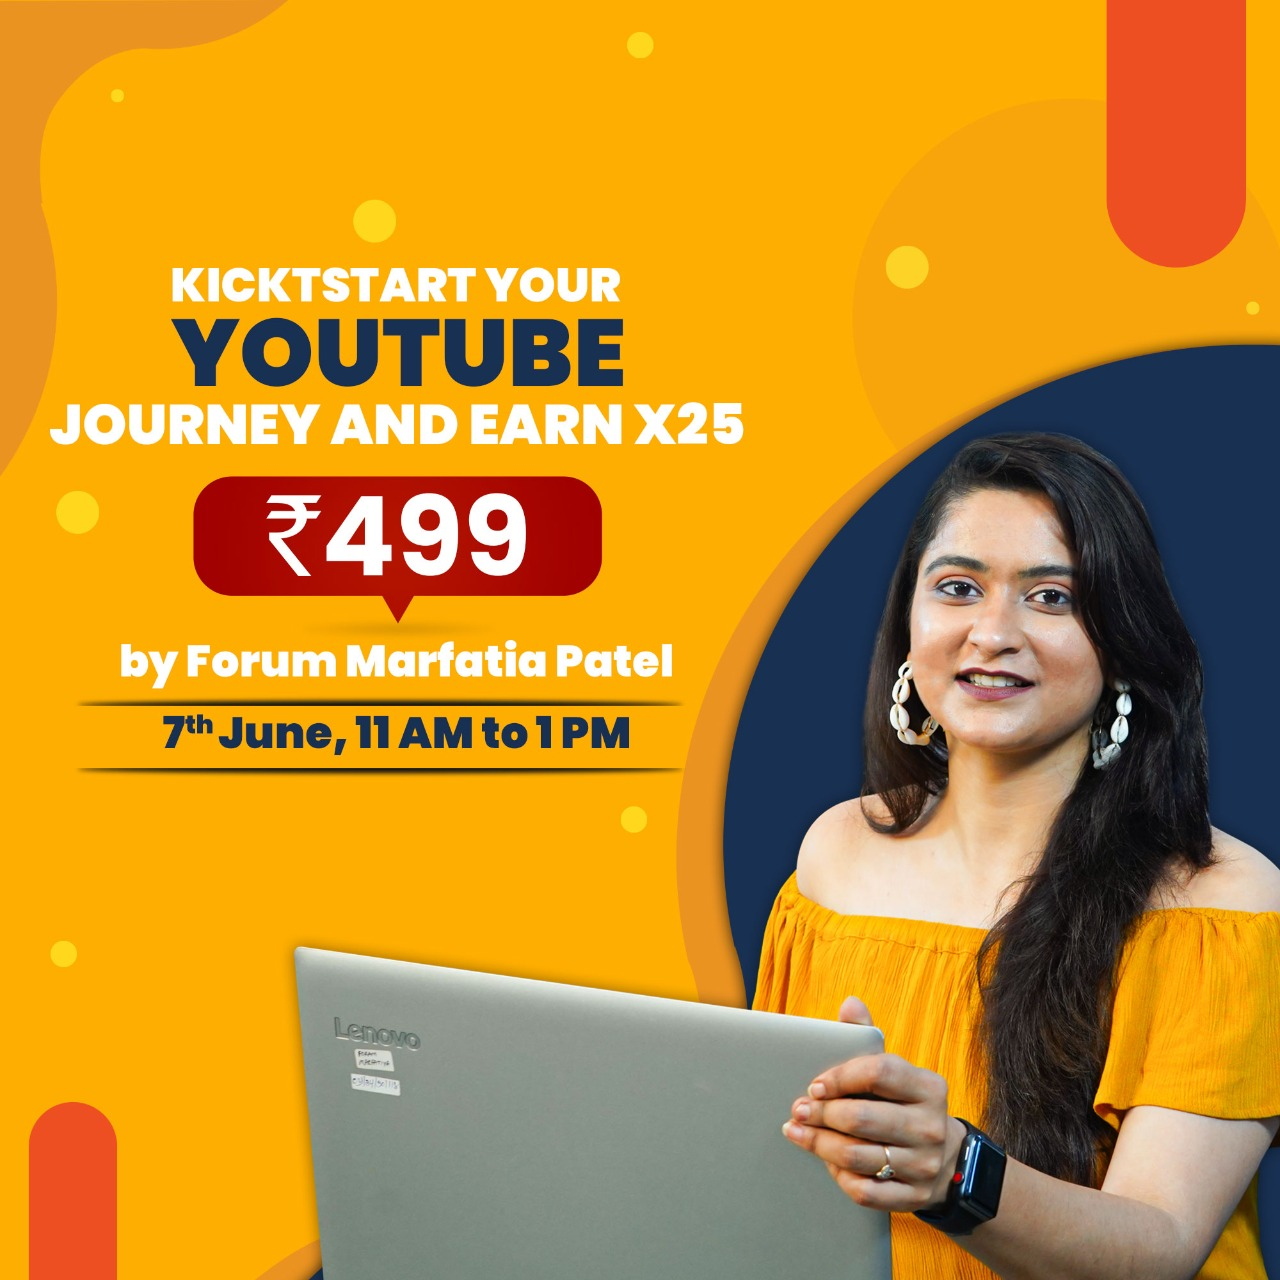 Kickstart your youtube journey and earn X25 by forum marfatia patel